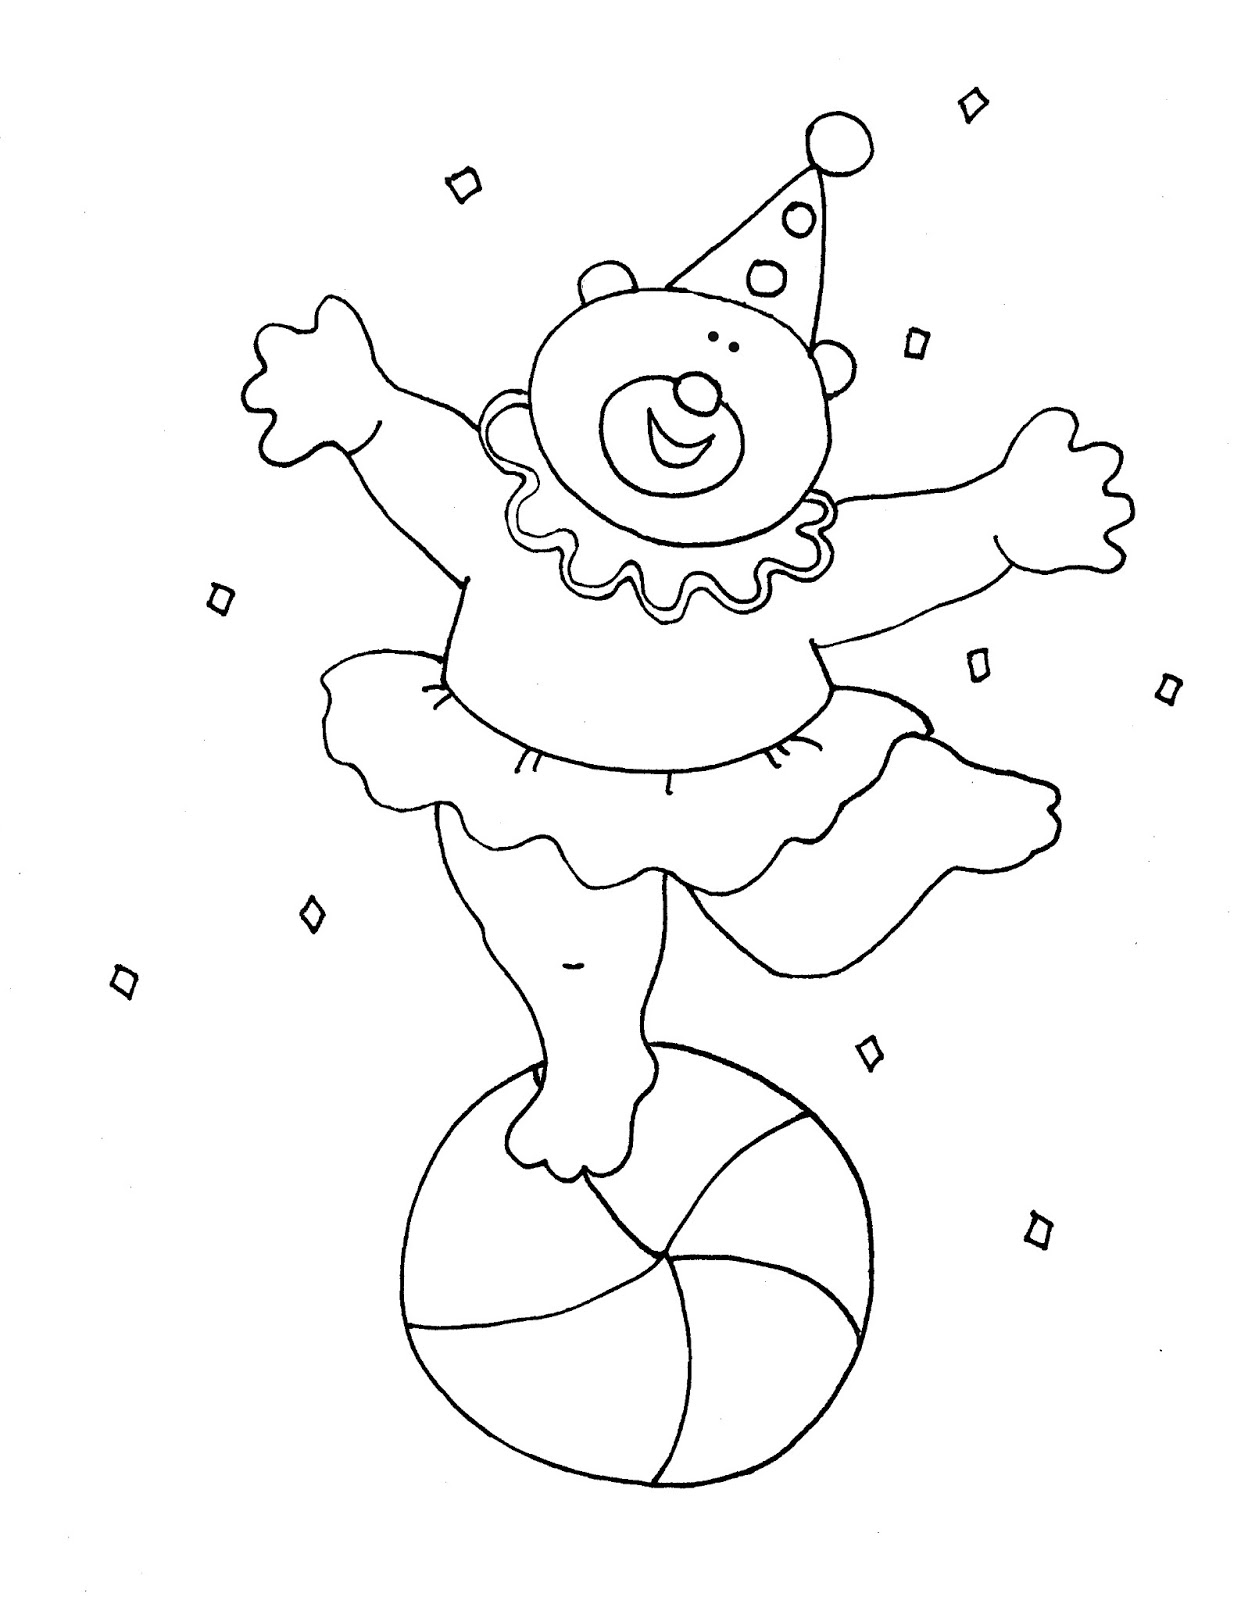 Dancing circus bear clipart black and white svg transparent stock Free Dearie Dolls Digi Stamps: Dancing Circus Bear color and B/W svg transparent stock